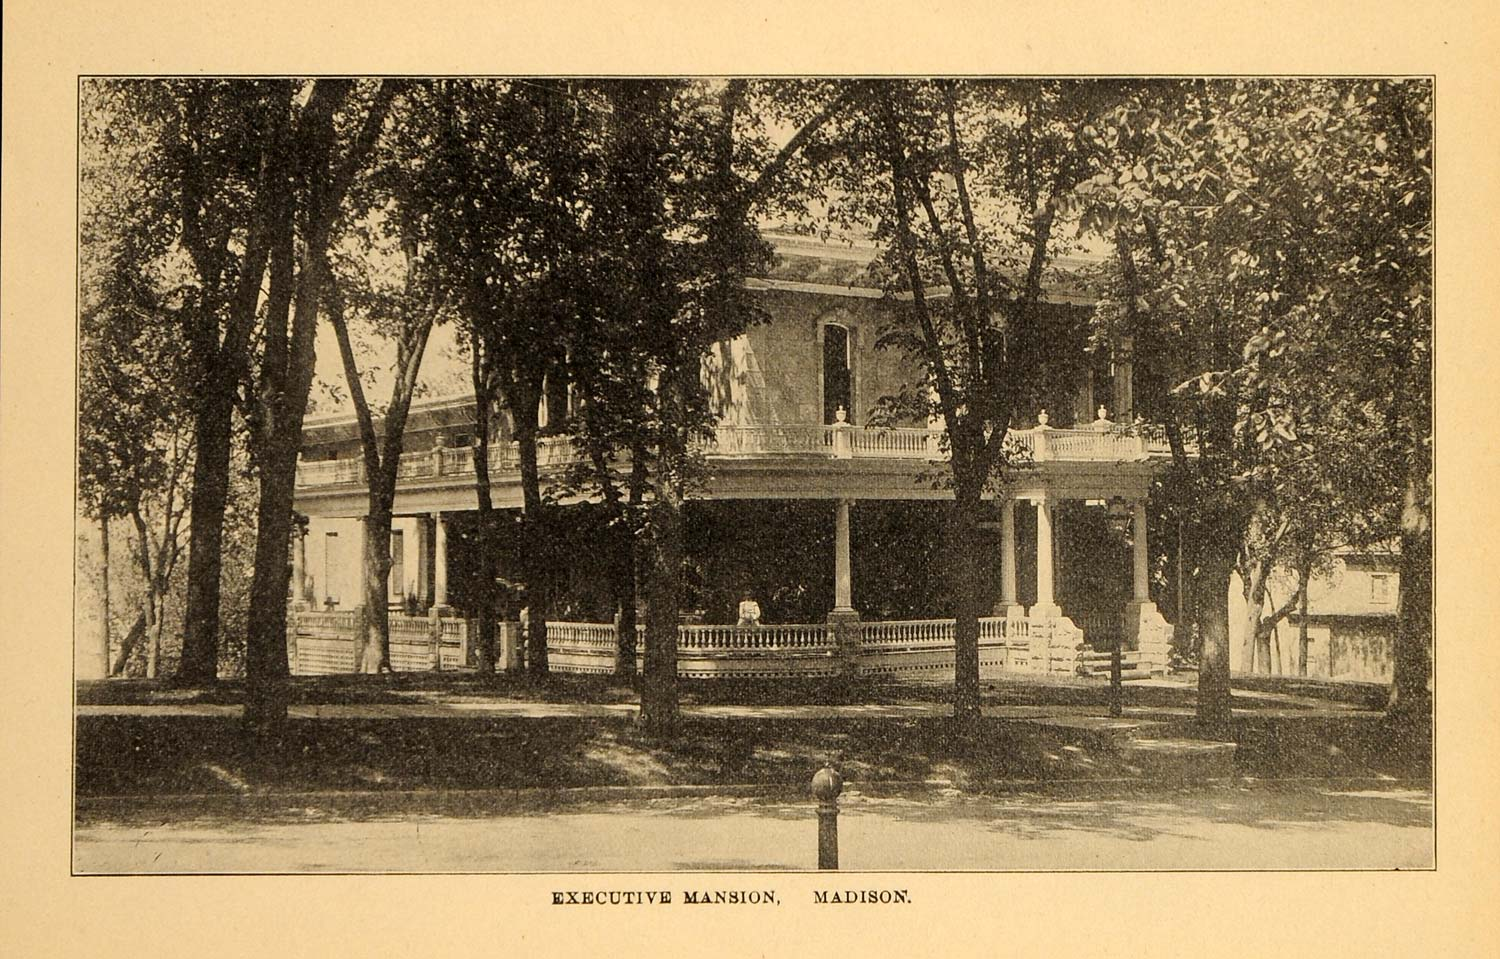 1907 Wisconsin State Executive Mansion Madison WI Print ORIGINAL HISTORIC WI1